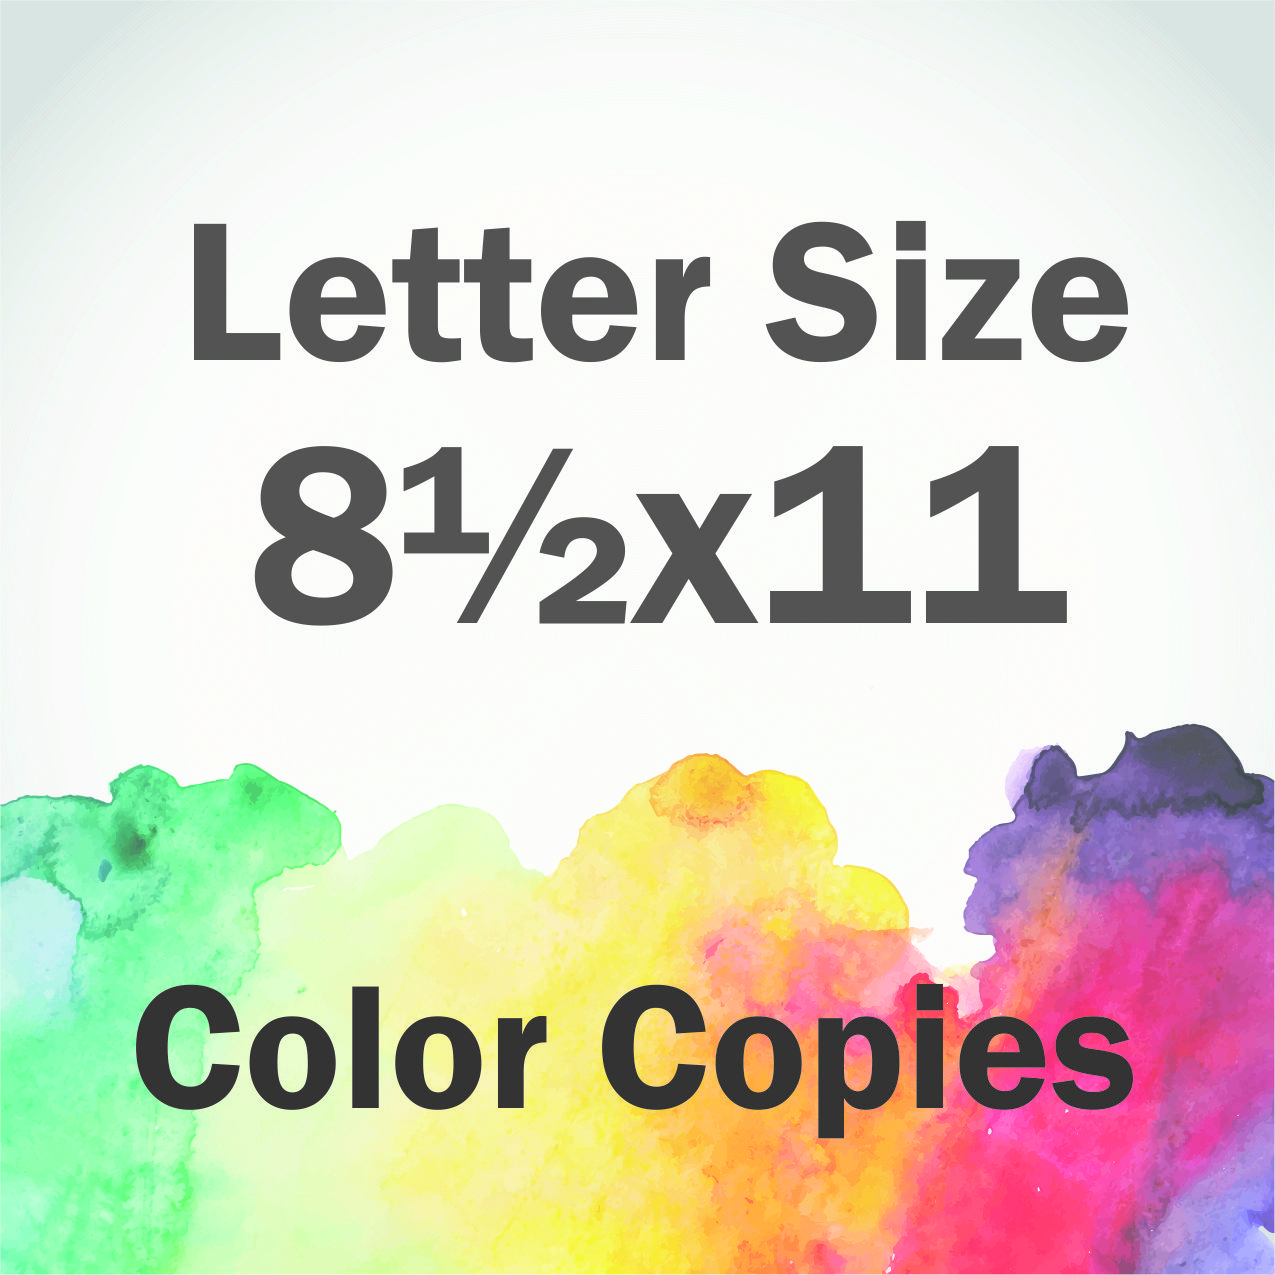 color copies letter size